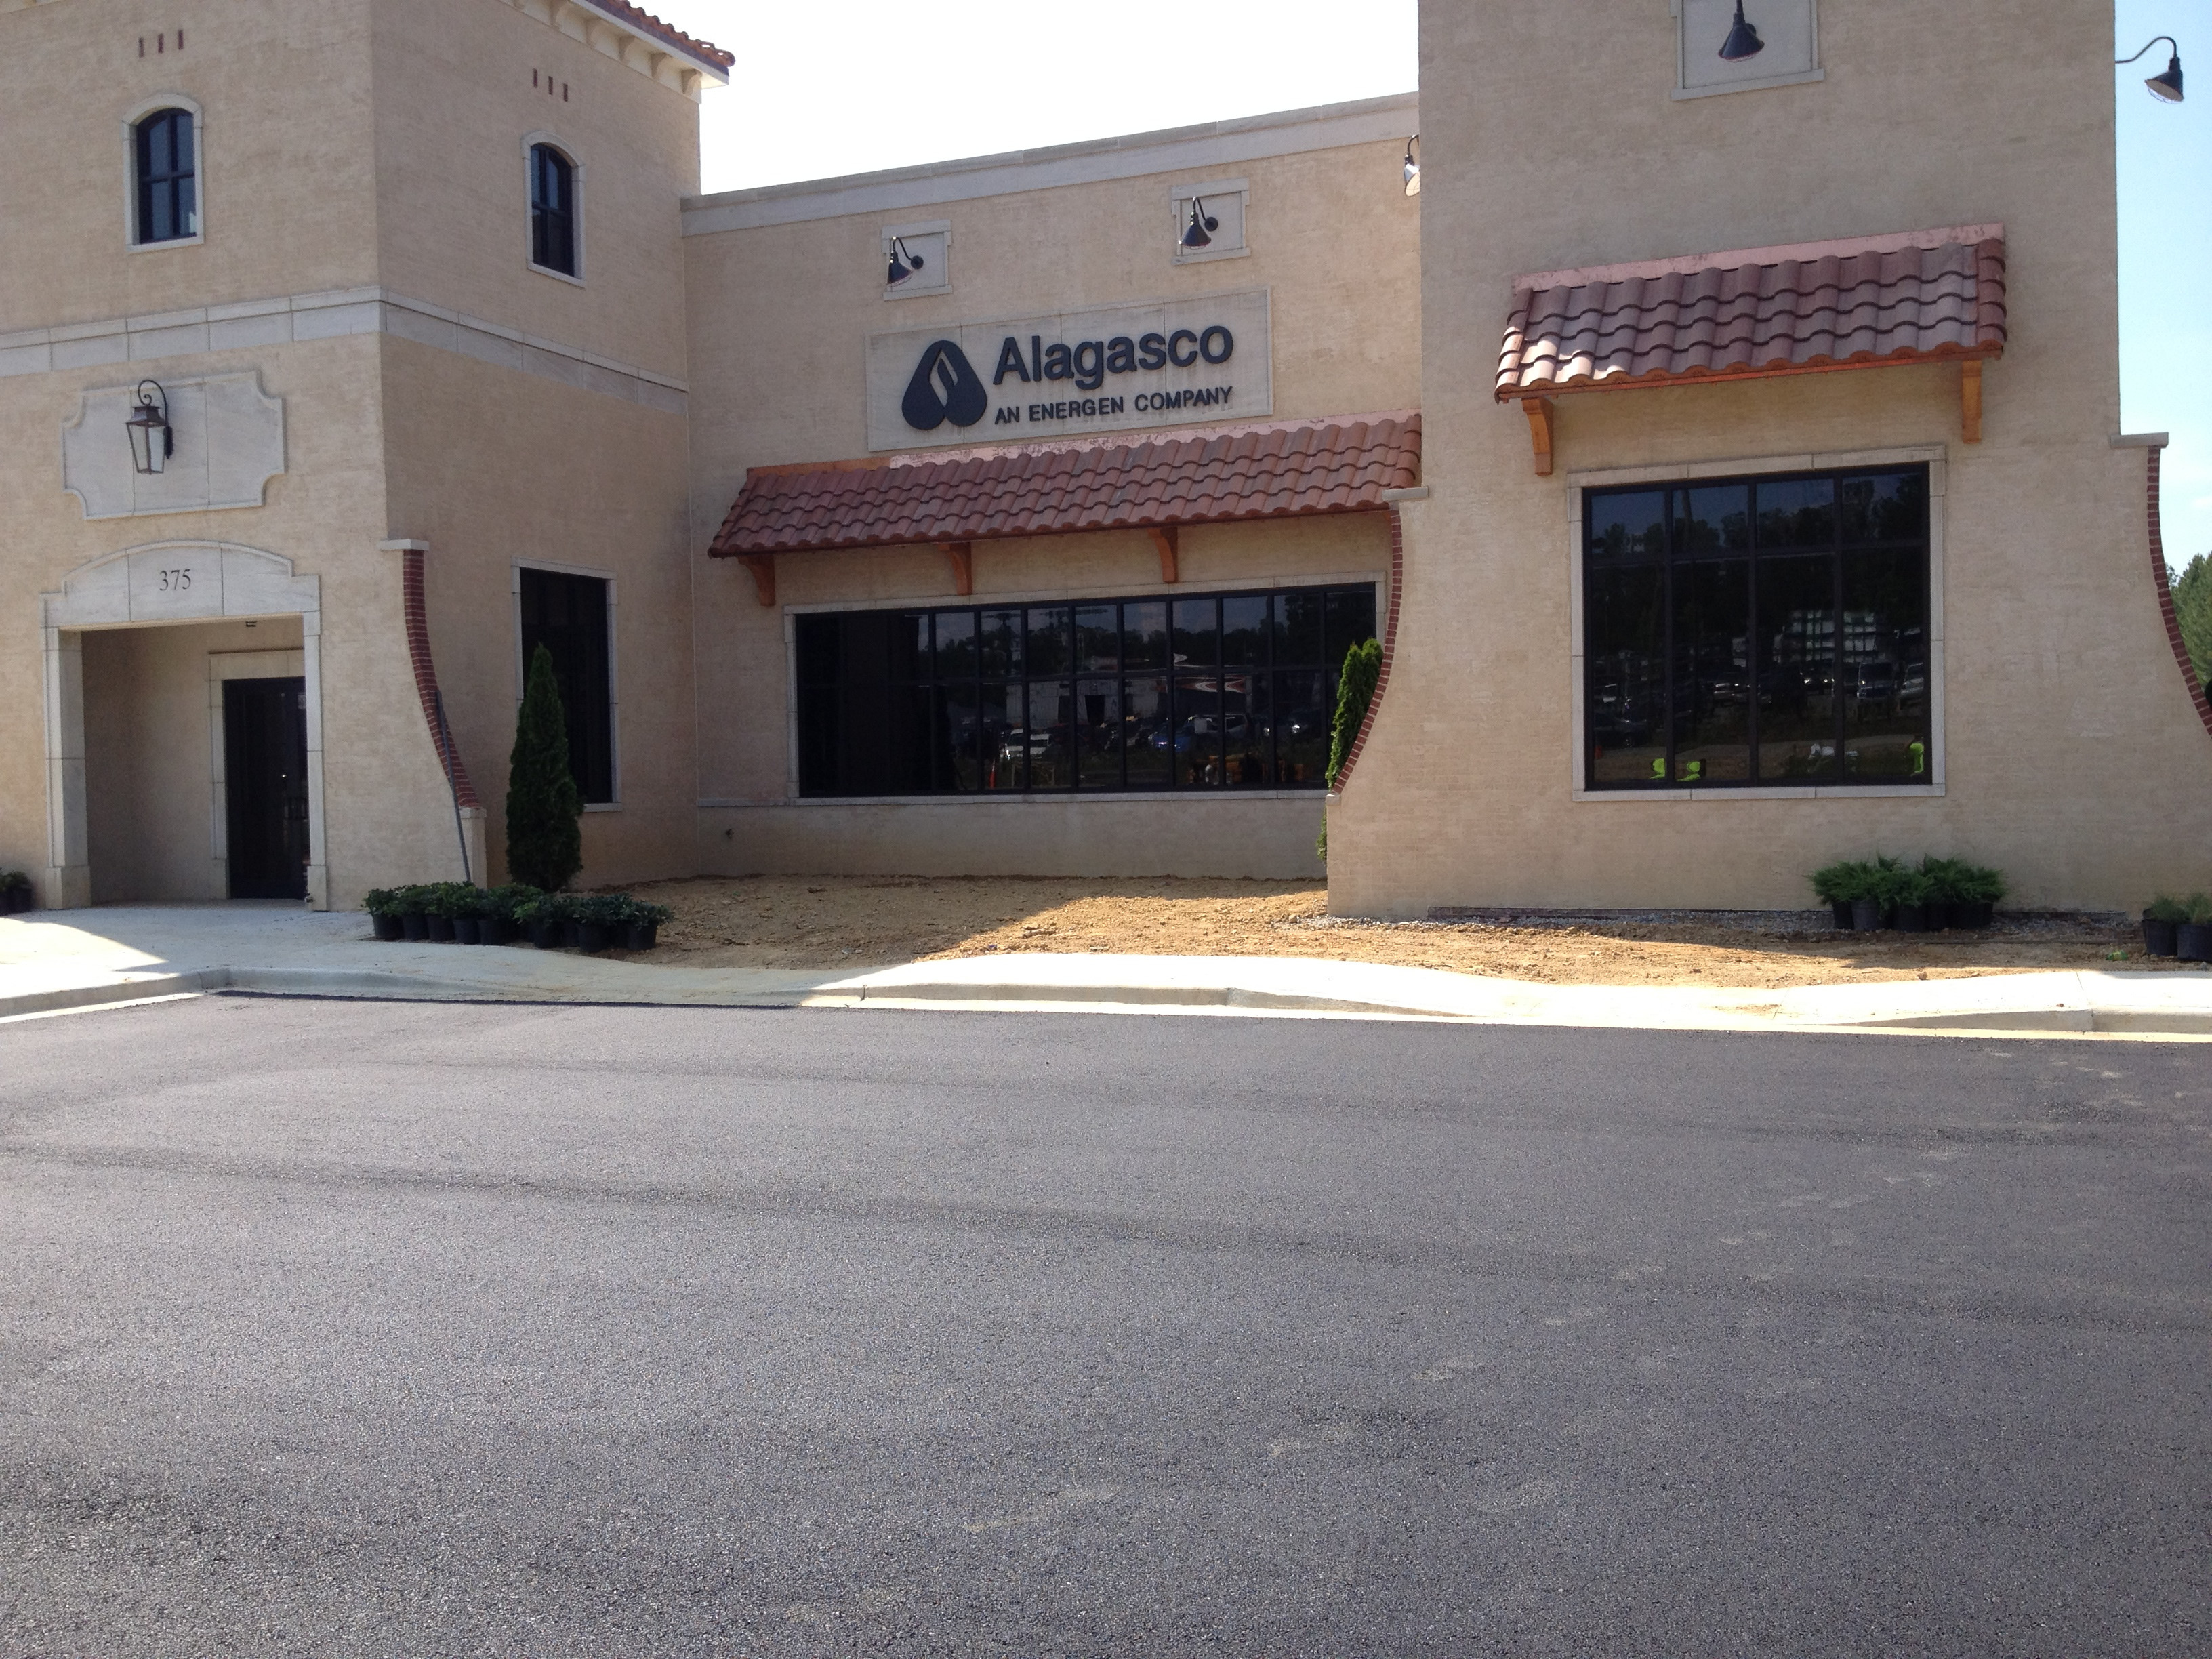 Alagasco Asphalt Parking Lot Maintenance